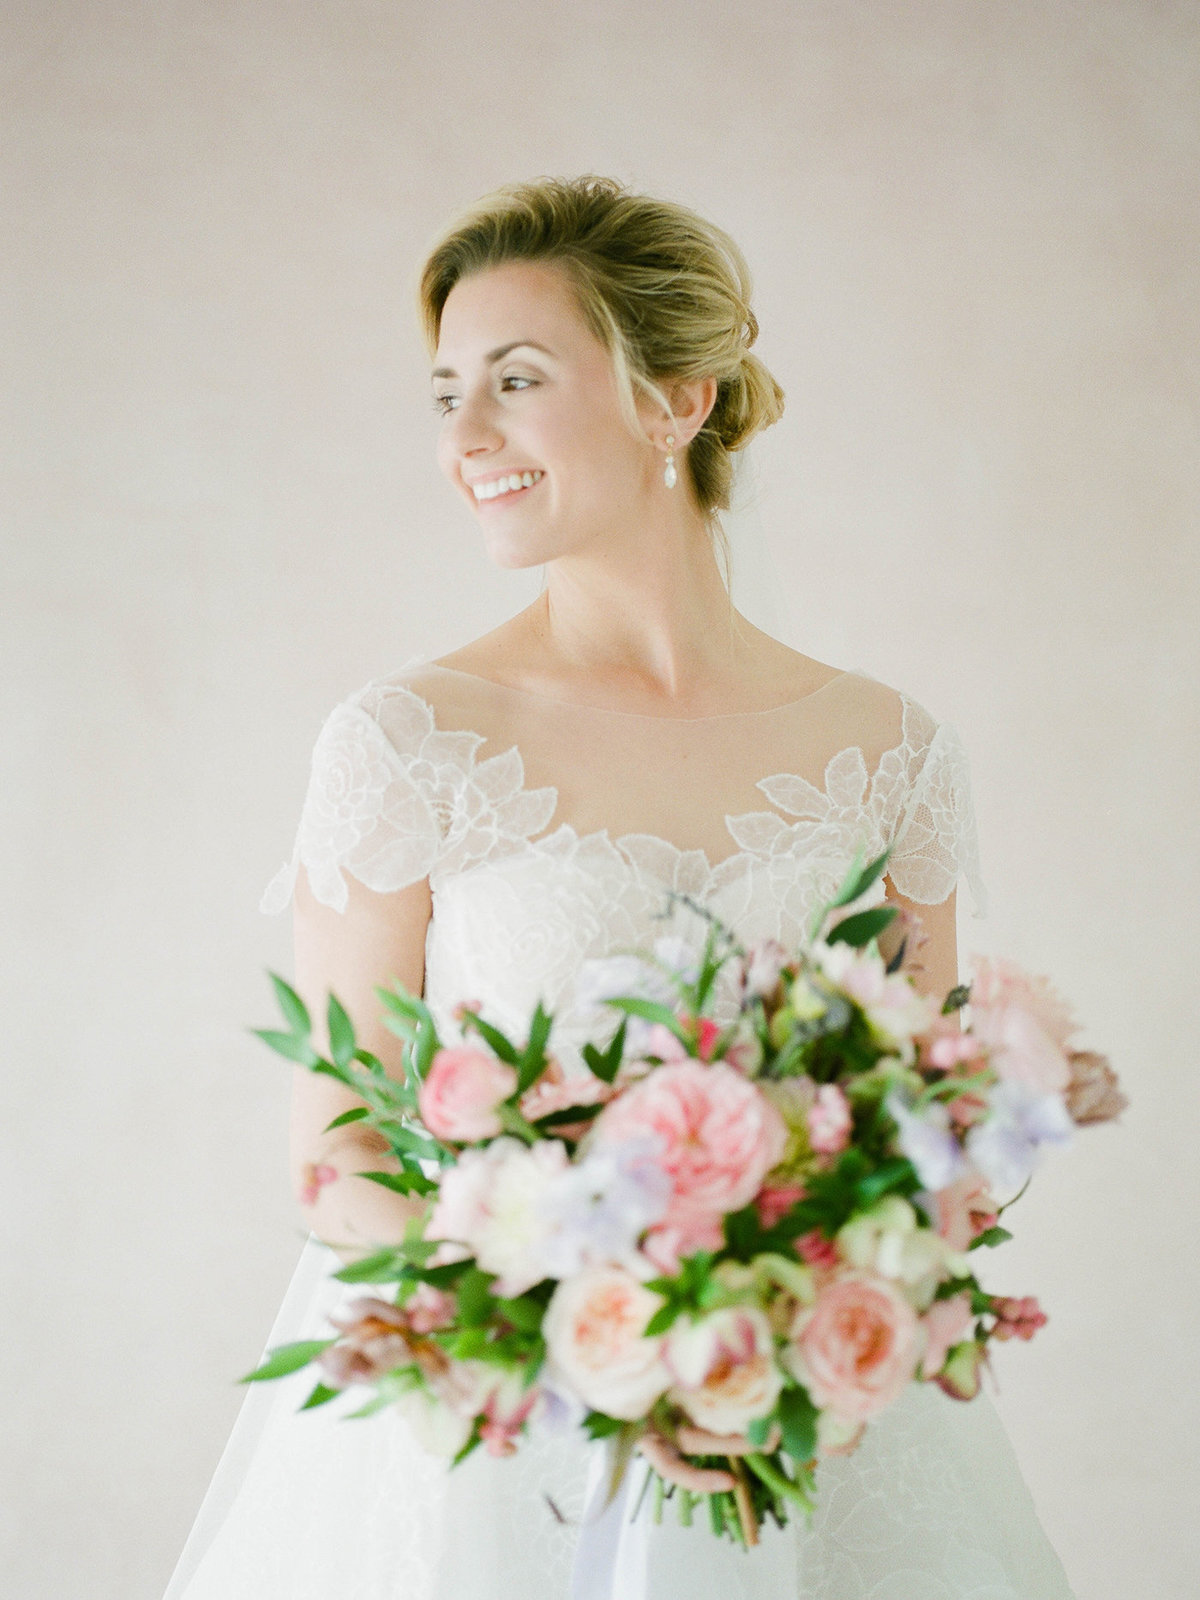 Fine Art Bridal Portraits - Sarah Sunstrom Photography - Film Wedding Photographer - 13